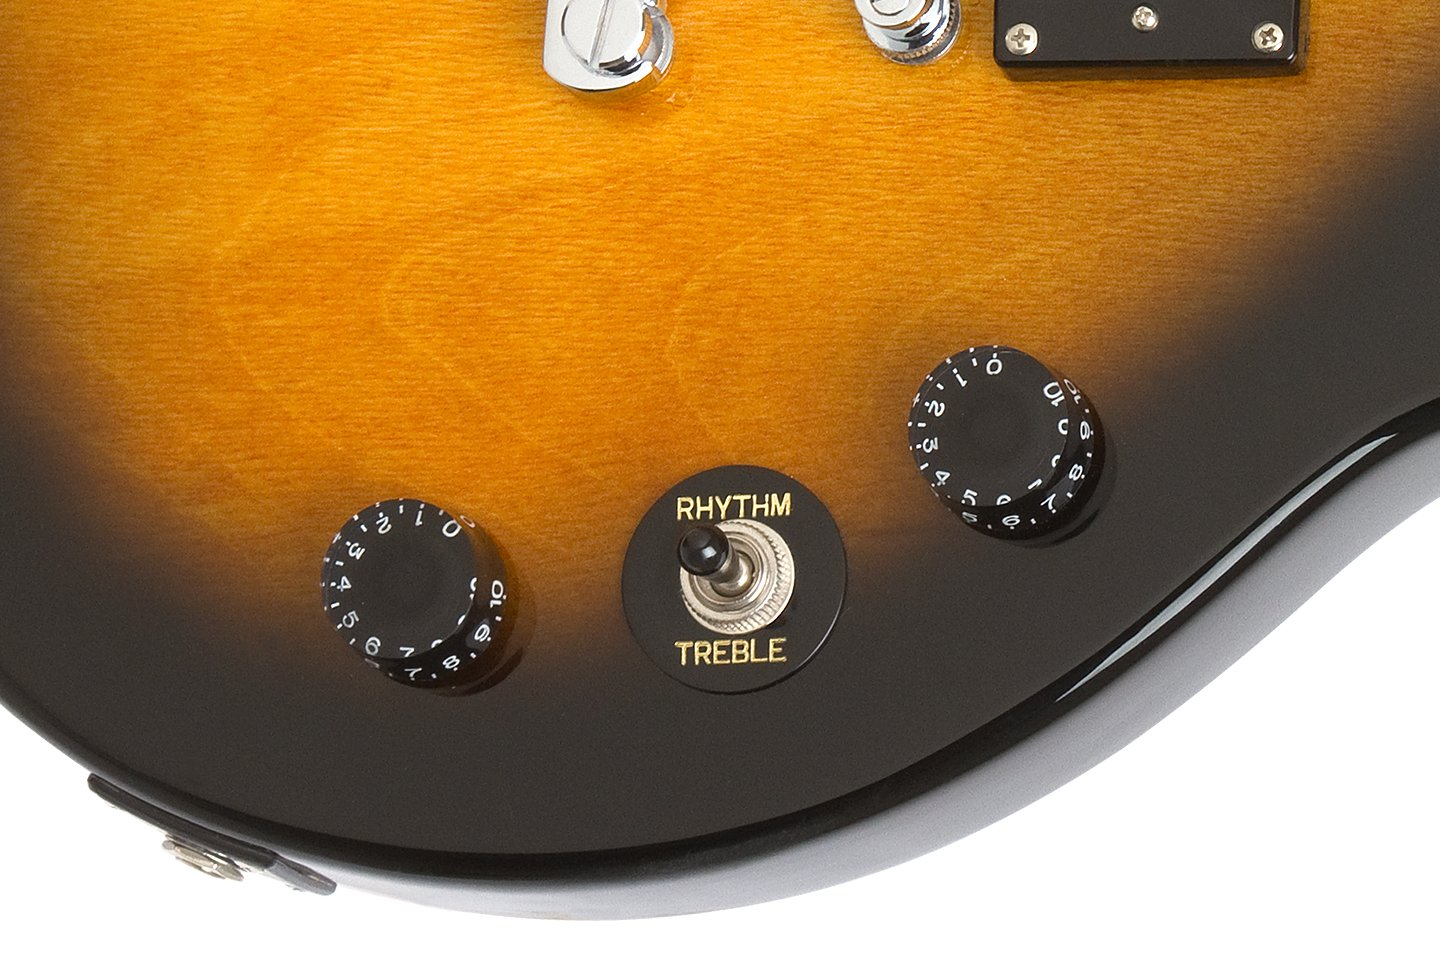 Epiphone Ppeg Egl1vsch1 Les Paul Electric Guitar Player Mini Squire Jack Wiring Package Vintage Sunburst Musical Instruments